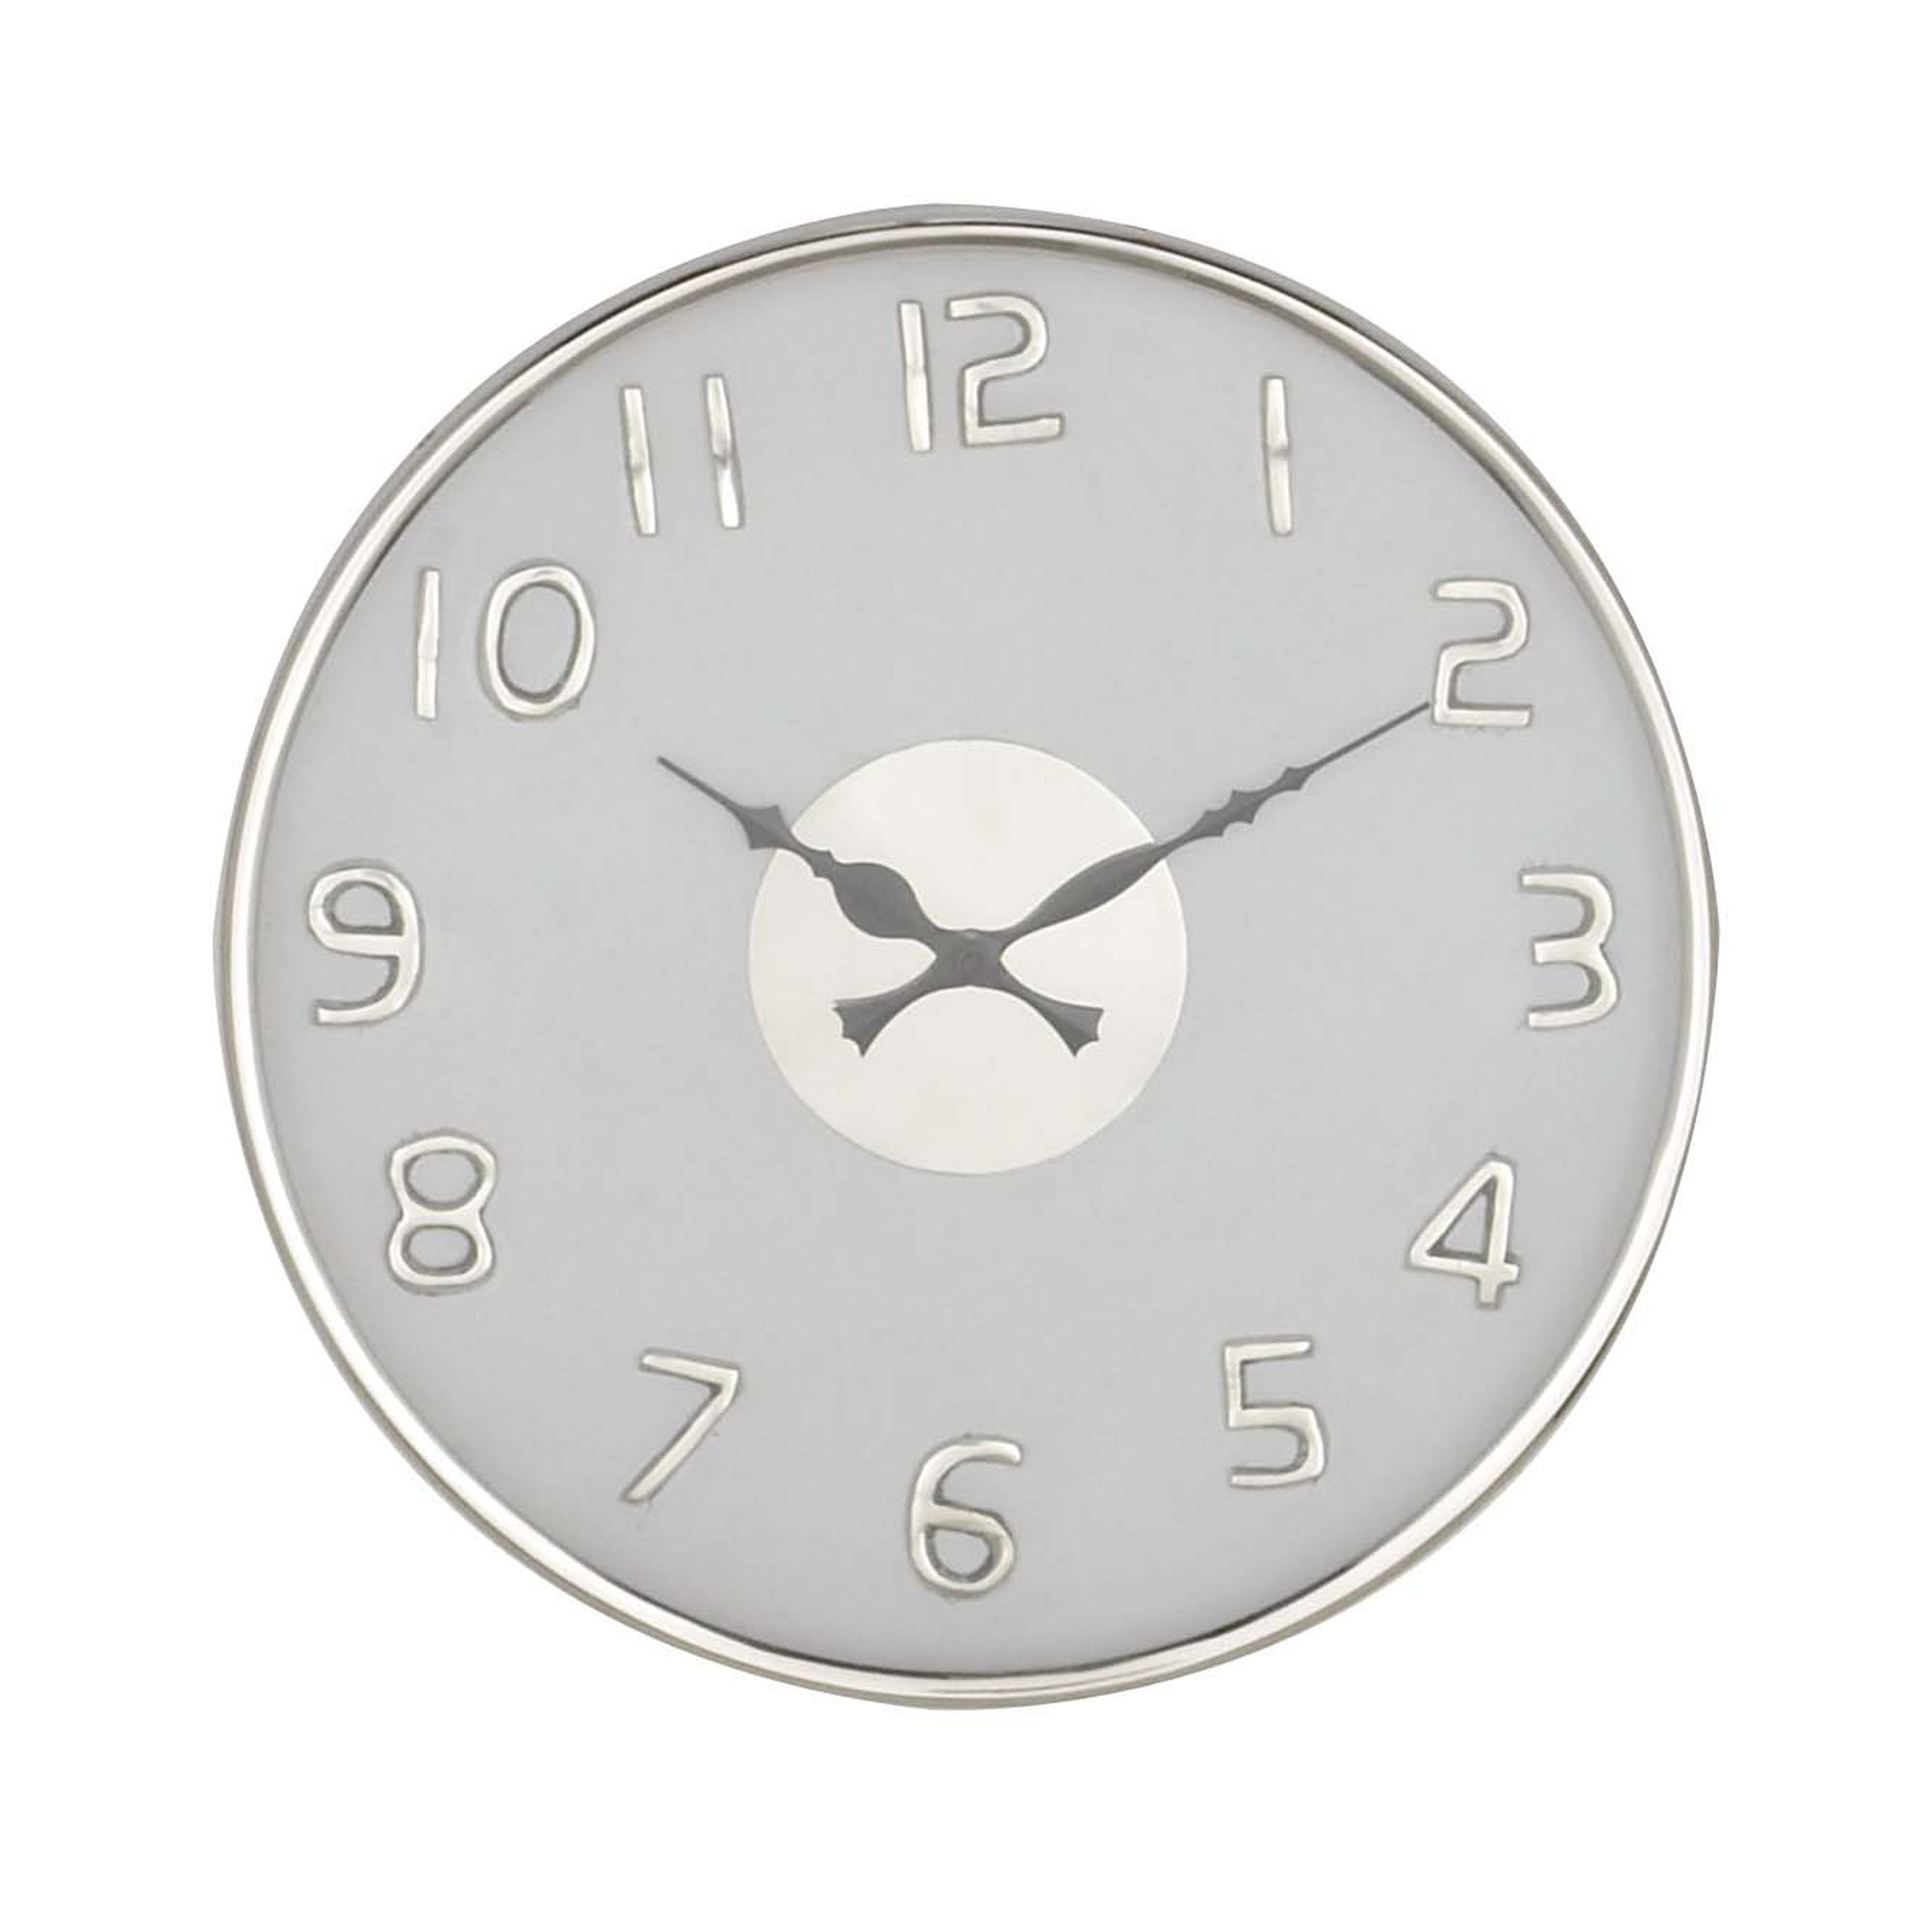 Strick Bolton Montgomery 14 Inch Modern Round White Stainless Steel Wall Clock On Free Shipping Today 21533555